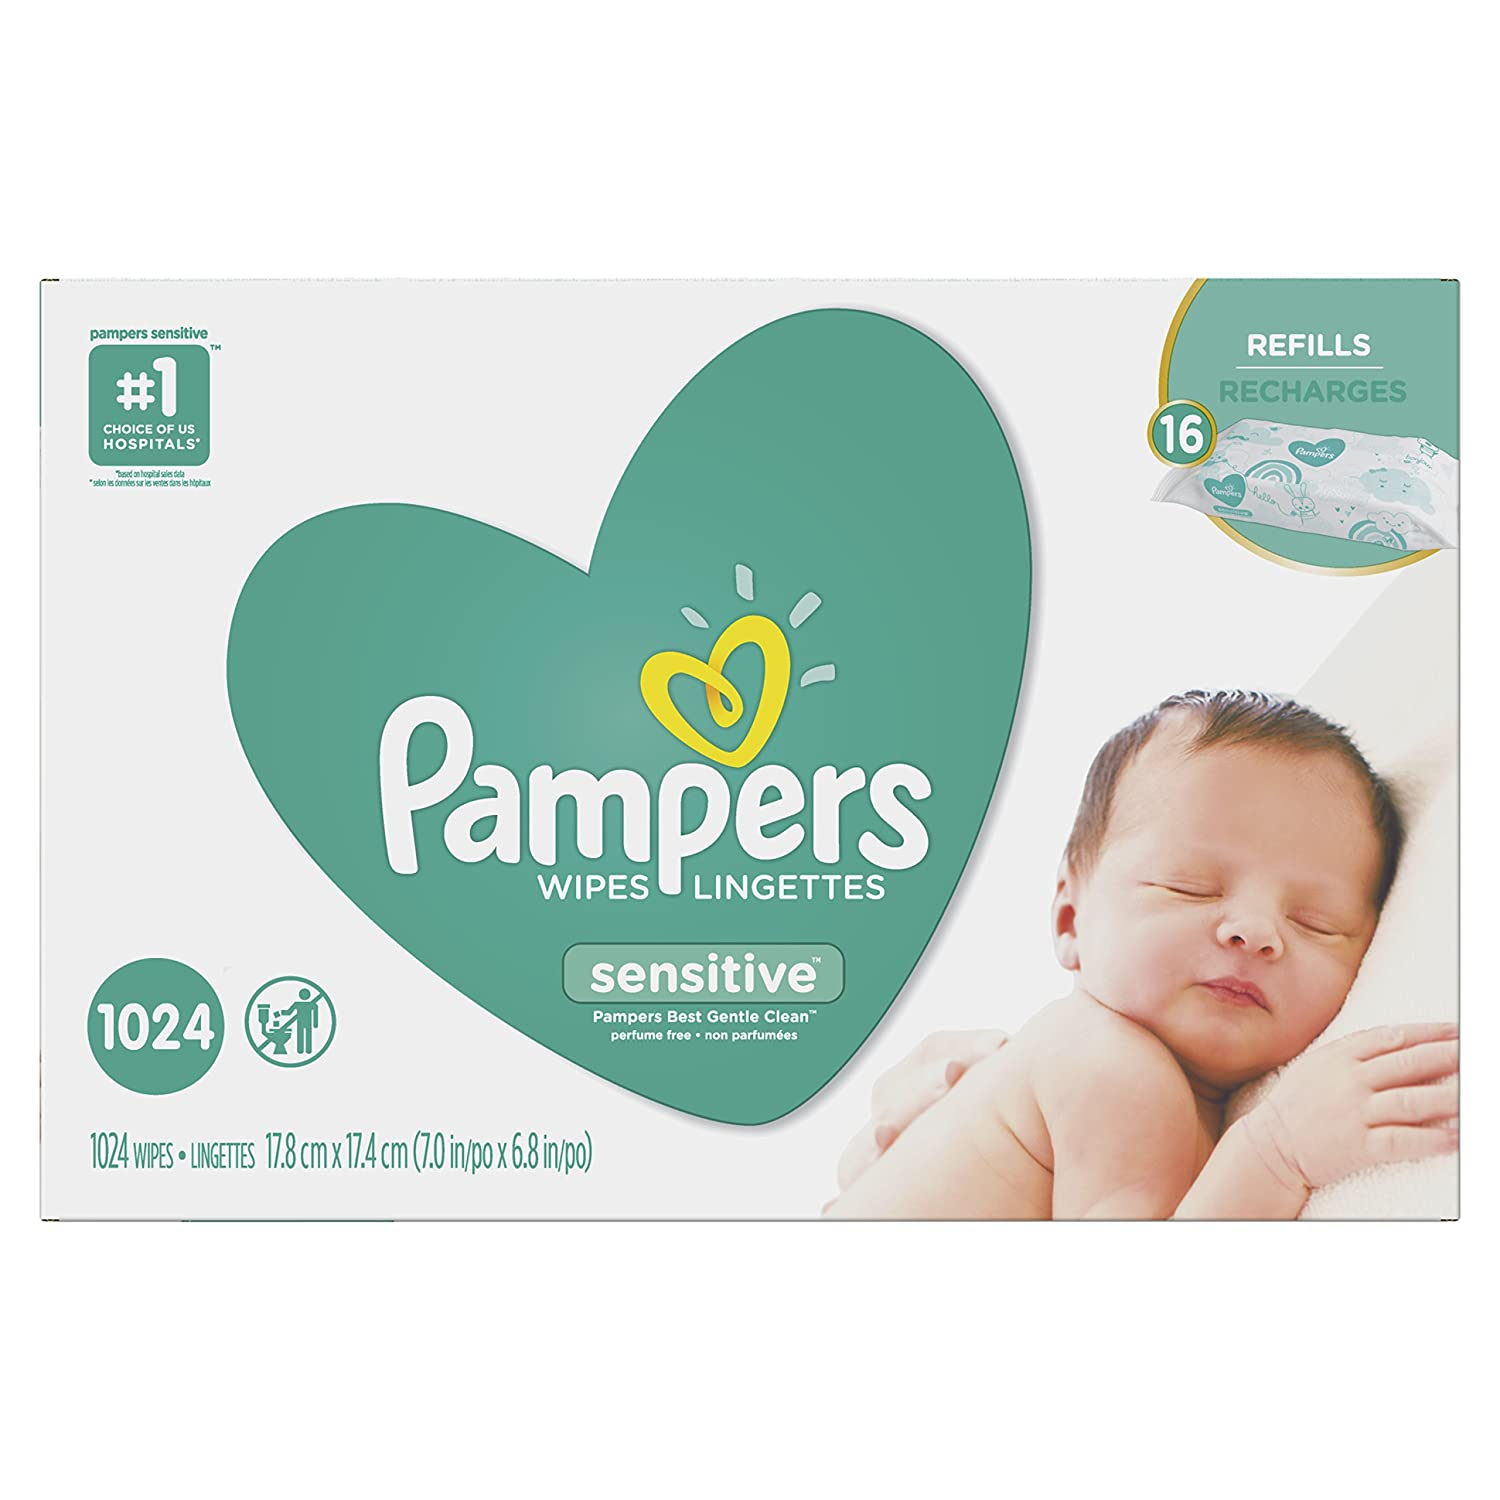 Pampers Baby Wipes Sensitive UNSCENTED 16X Refill Packs, 1024 Count Procter and Gamble